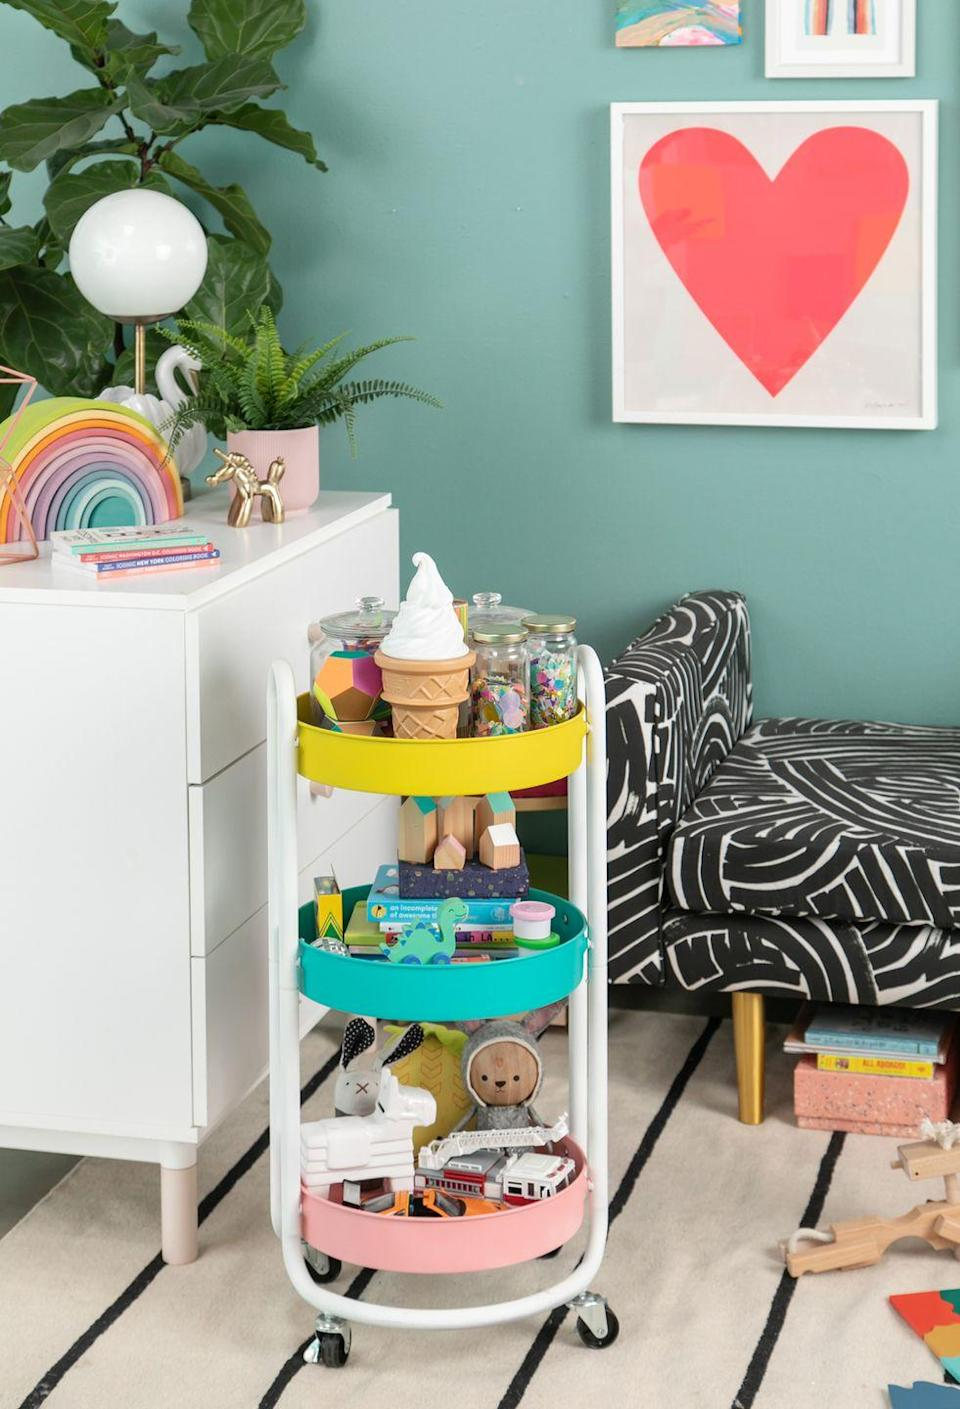 """<p>Have your kiddos help clean up by giving them a cute cart to load up with their toys from around the house and take back to the playroom.</p><p><strong>See more at </strong><strong><a href=""""https://ohjoy.blogs.com/my_weblog/2019/02/a-play-room-to-grow-with.html"""" rel=""""nofollow noopener"""" target=""""_blank"""" data-ylk=""""slk:Oh Joy"""" class=""""link rapid-noclick-resp"""">Oh Joy</a>.</strong></p><p><strong><a class=""""link rapid-noclick-resp"""" href=""""https://www.amazon.com/BEEY-Utility-Trolley-Organizer-Barbecue/dp/B08F3D97RJ/ref=sr_1_7?dchild=1&keywords=round+rolling+cart&qid=1613589329&s=office-products&sr=1-7&tag=syn-yahoo-20&ascsubtag=%5Bartid%7C10063.g.36014277%5Bsrc%7Cyahoo-us"""" rel=""""nofollow noopener"""" target=""""_blank"""" data-ylk=""""slk:SHOP ROLLING CARTS"""">SHOP ROLLING CARTS</a><br></strong></p>"""